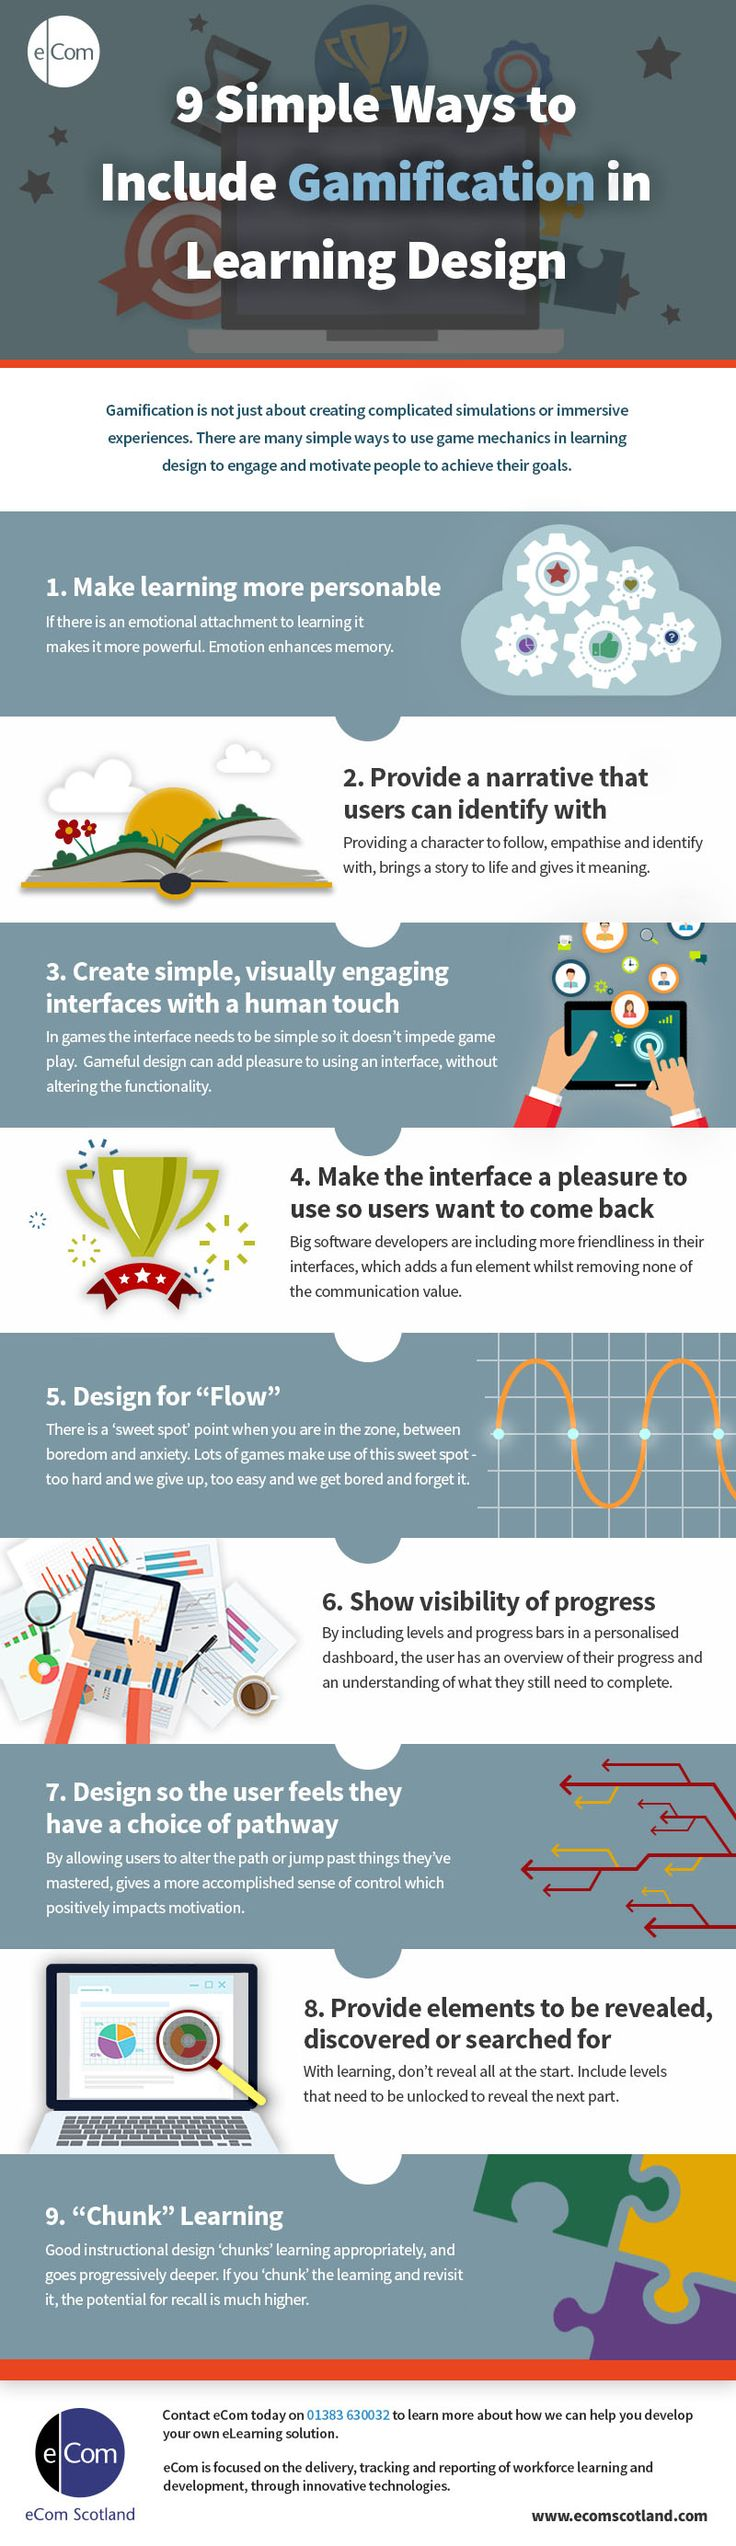 9 Ways to Include Gamification in Learning Design Infographic - http://elearninginfographics.com/9-ways-to-include-gamification-in-learning-design/